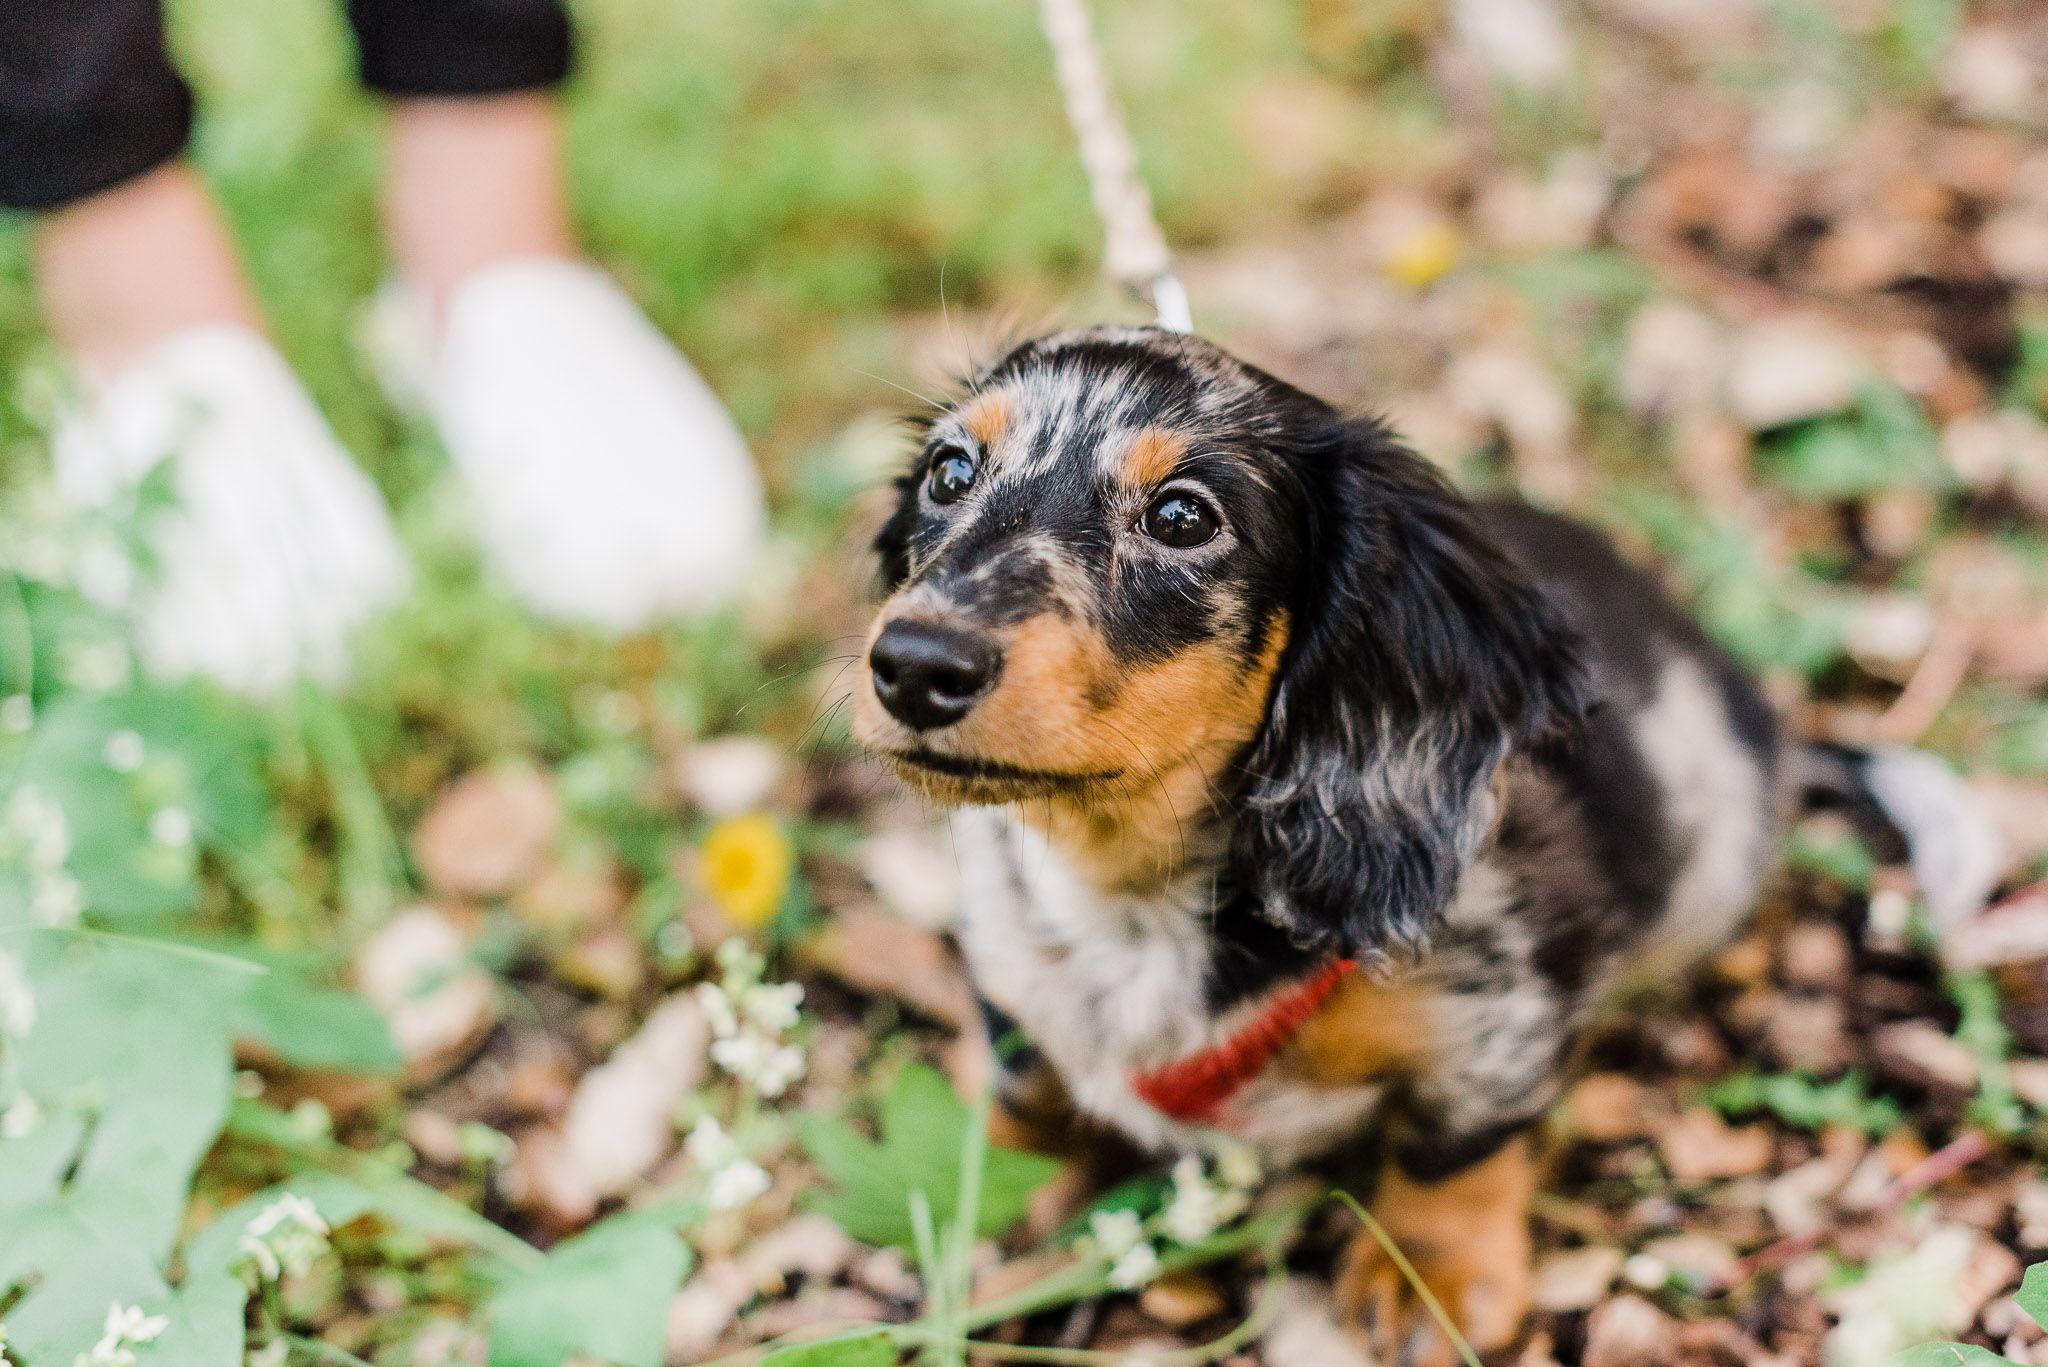 Pet Portrait Of Black Long Haired Dachshund Puppy